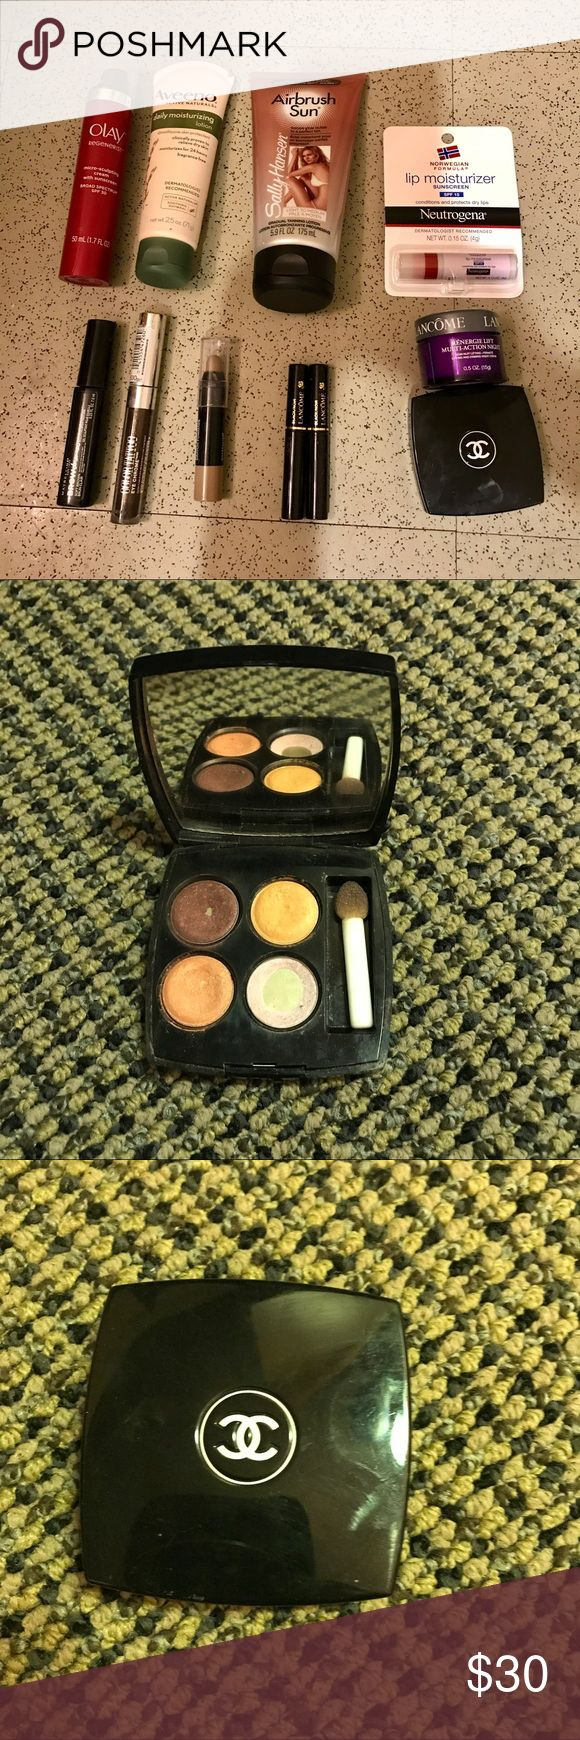 ✨ HUGE MAKEUP HAUL ✨ Over $150 worth of makeup/skincare! All new except the Chanel palette & Maybelline set is VERY lightly used. Includes: Chanel Quadra Eye Shadow set, two Lancôme mascaras (noir), Lancôme Multi-Action night cream, Maybelline Brow Drama sculpting brow mascara in soft brown, Maybelline Brow Drama Pomade Crayon, Maybelline Eye Chrome Color Tattoo (dark brown), Neutrogena lip moisturizer, Olay Regenerist micro-sculpting cream, Aveeno lotion, Sally Hansen Airbrush Tanning…